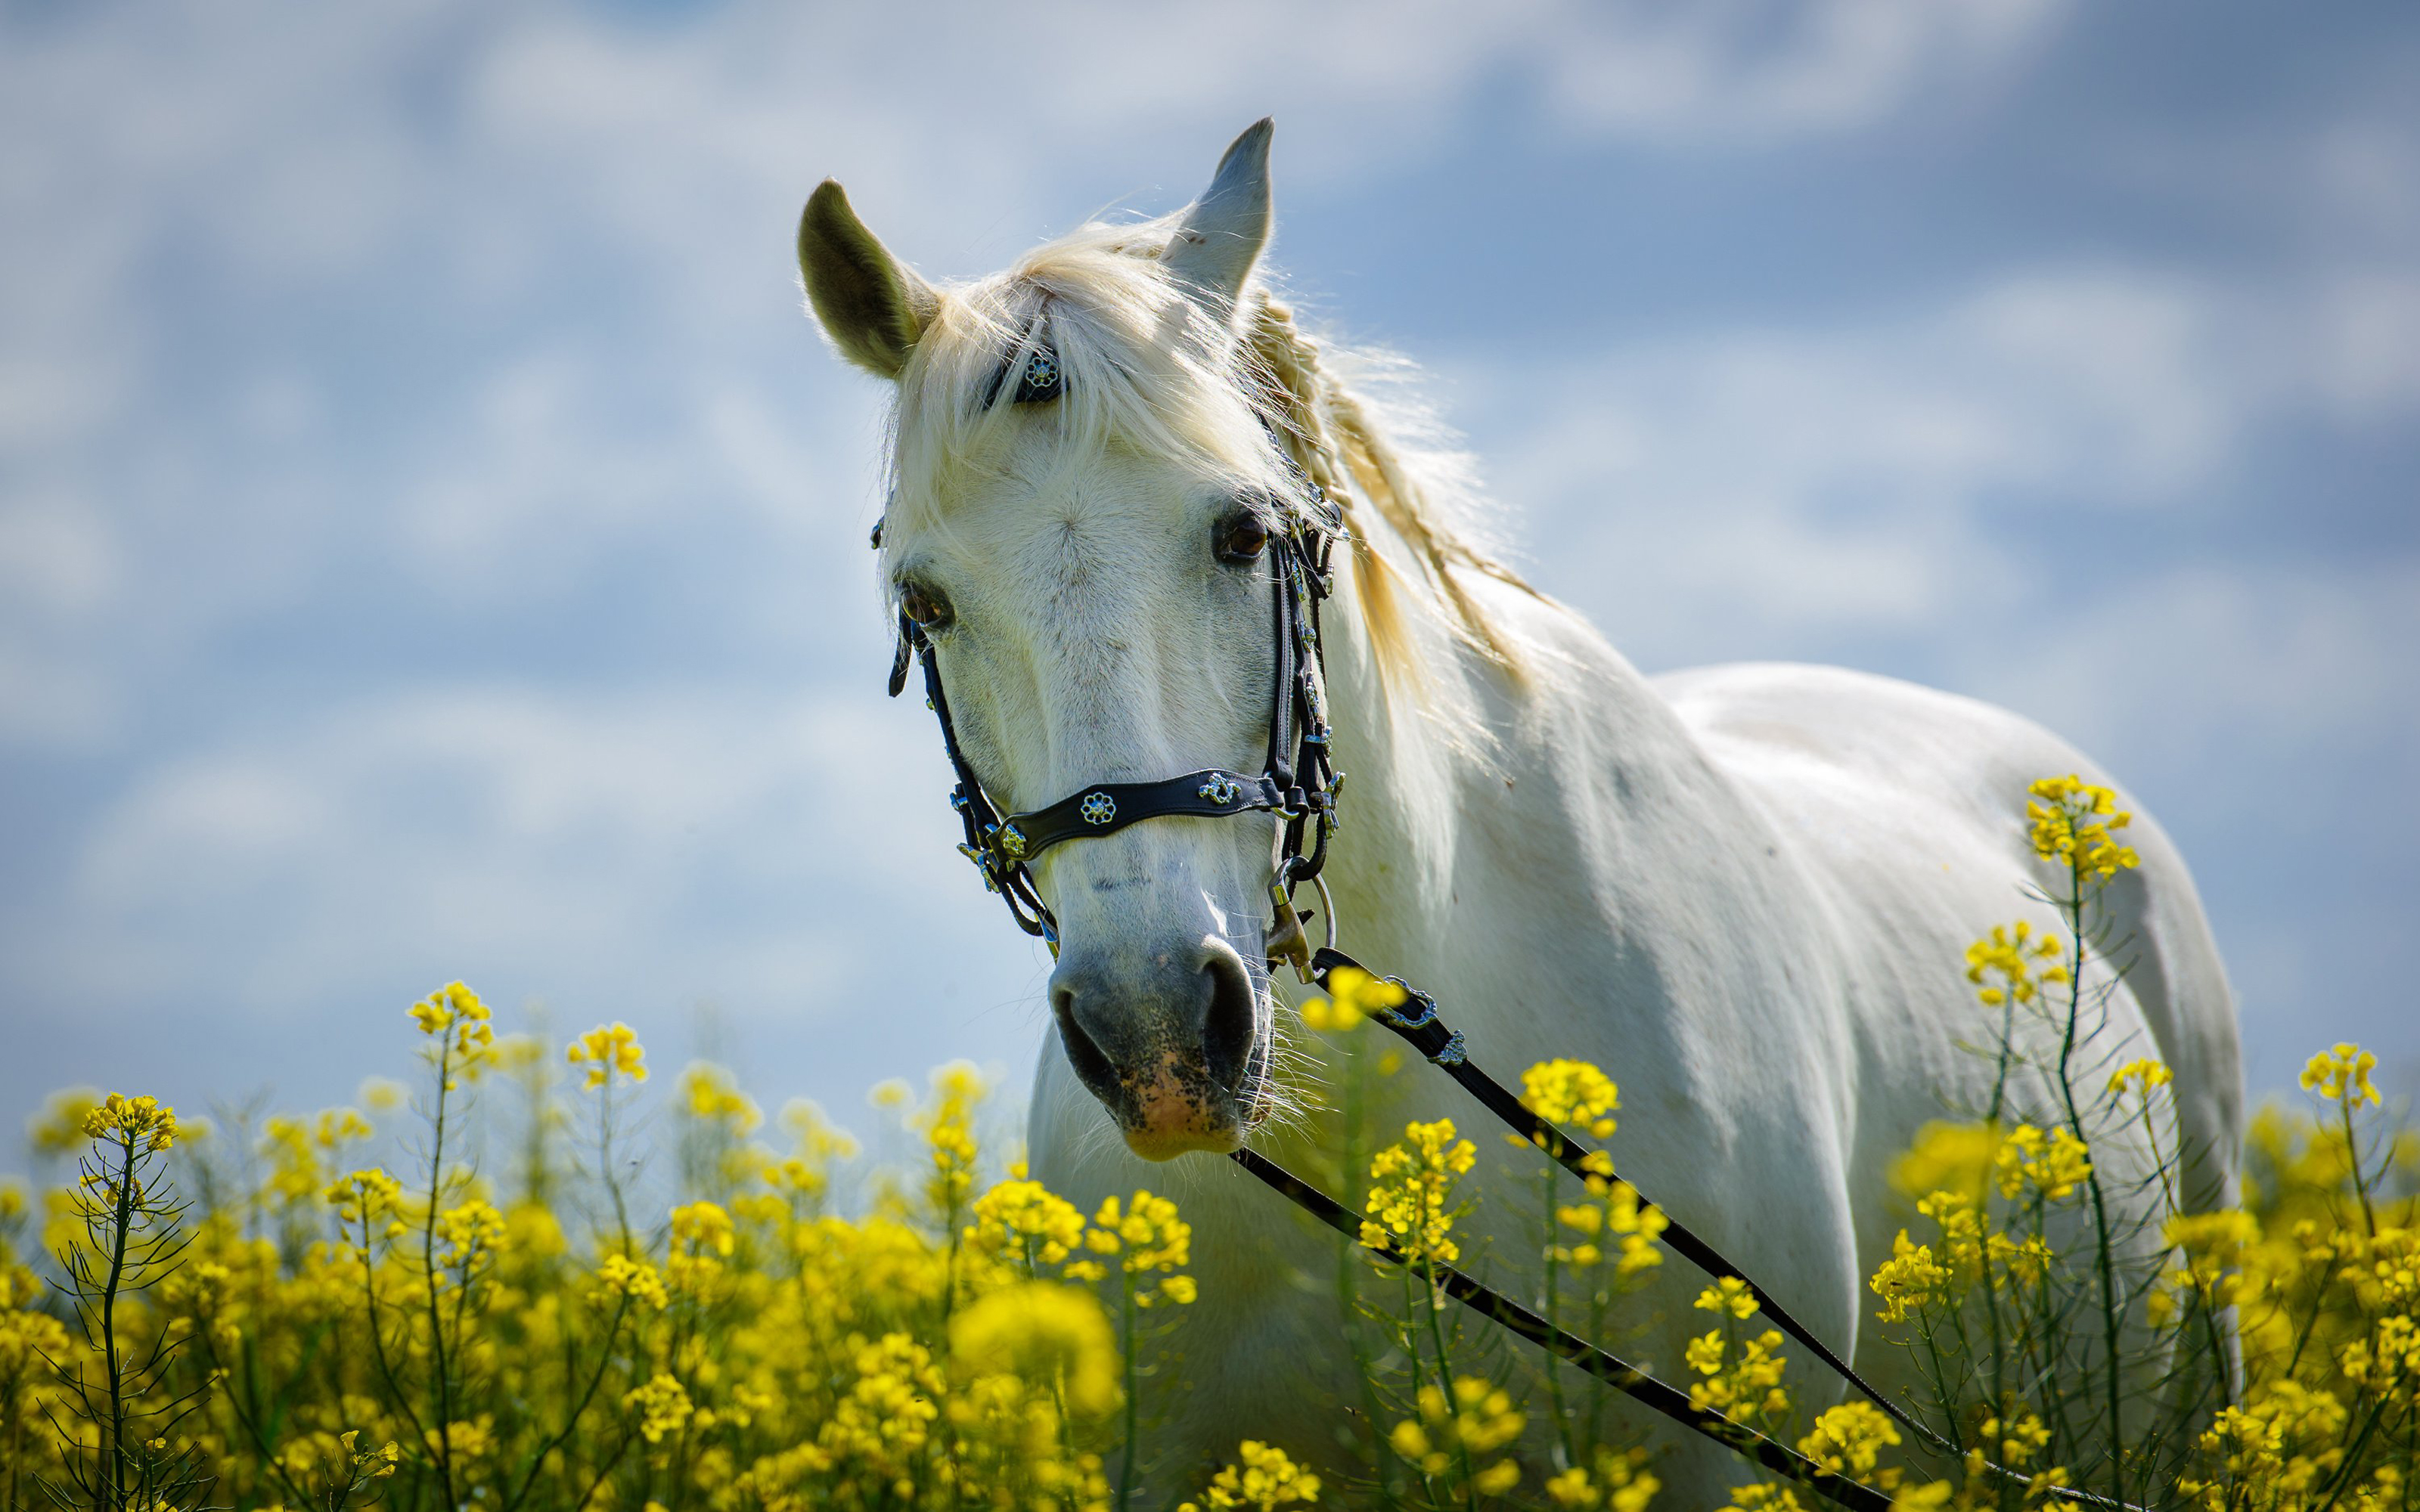 Cute Animals Hd Wallpapers Free Download Horse In Field With Yellow Flowers Meadow Desktop Hd